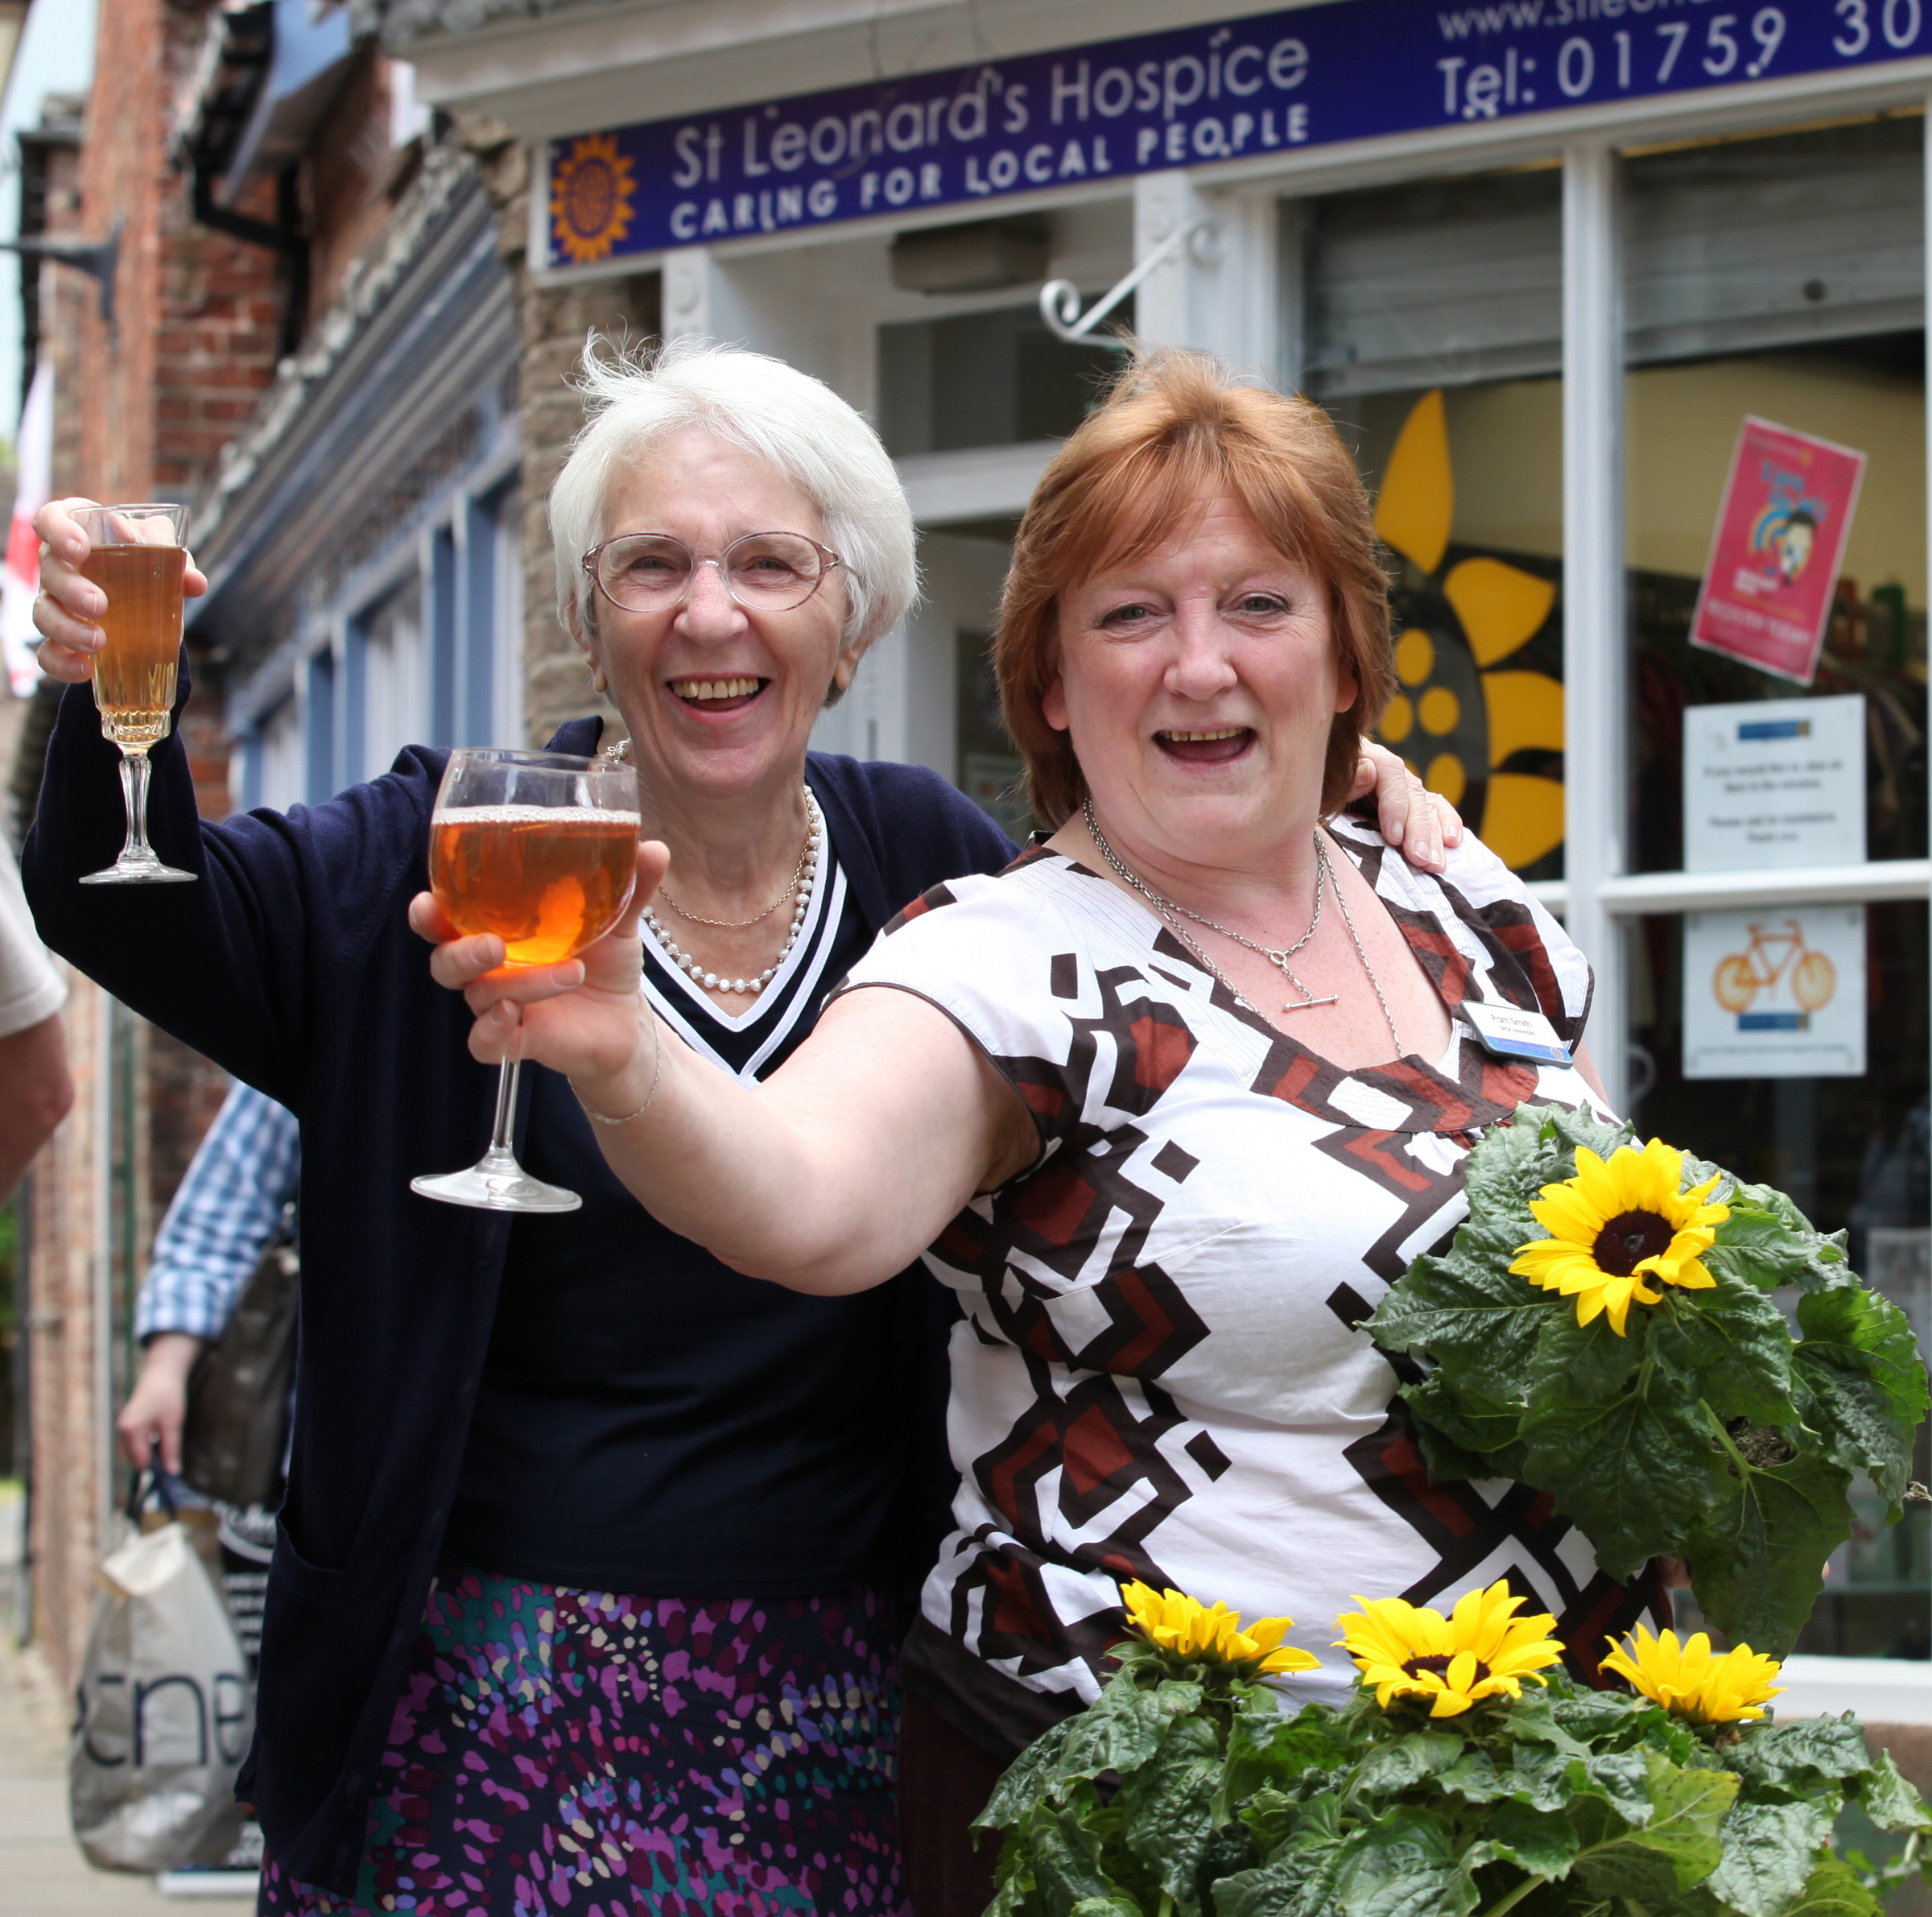 Pam Smith, right, manager at the St Leonard's Hospice Shop, in Pocklington for the past 16 years, and Olwen Thompson, volunteer assistant for 14 years